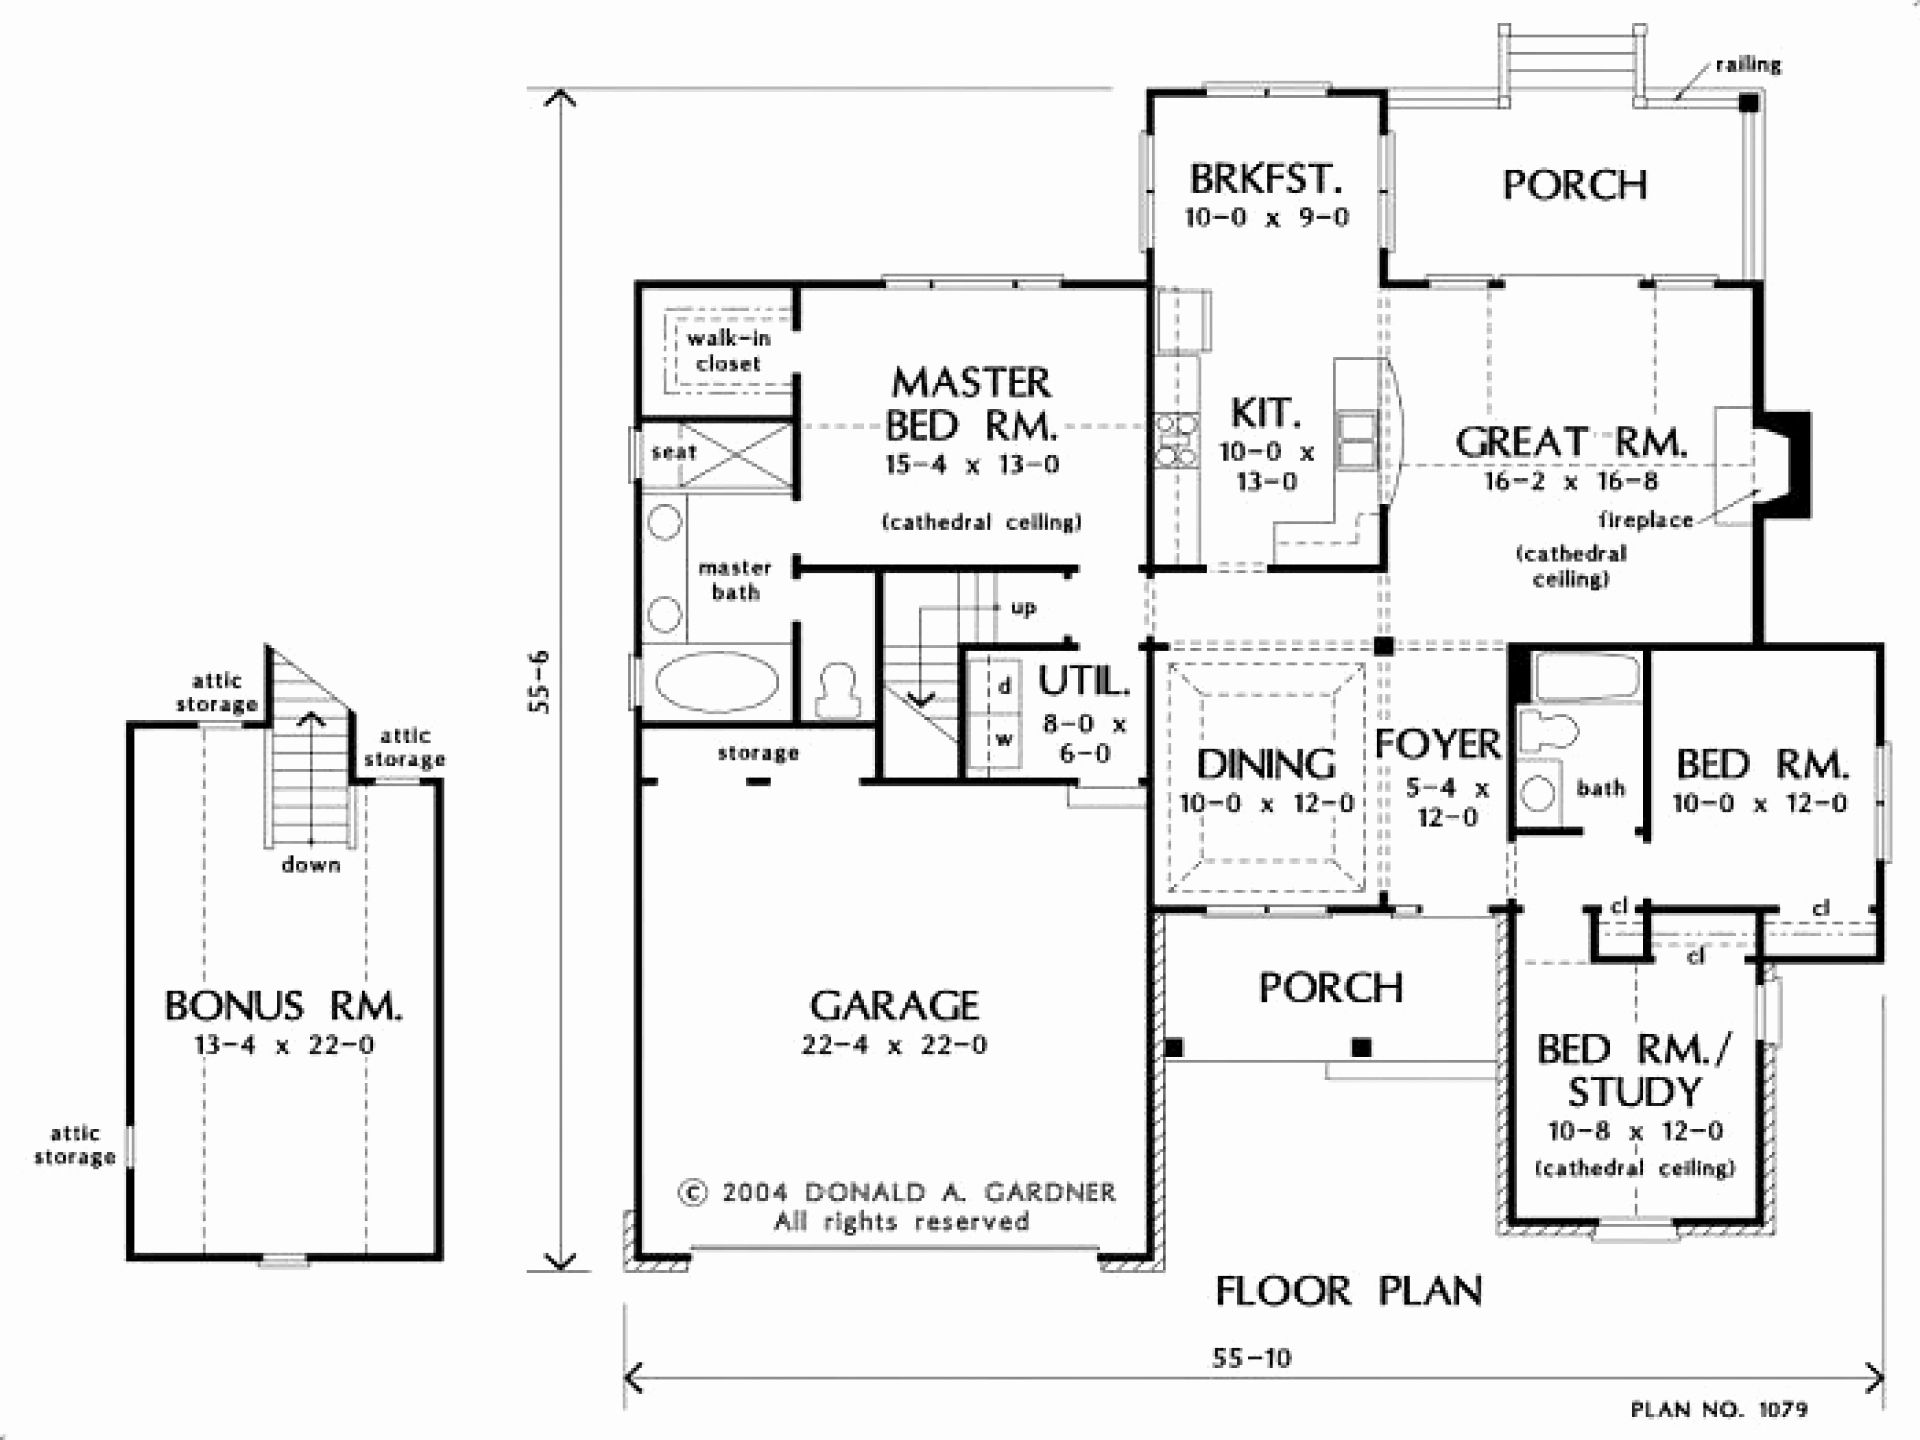 Draw House Plans Online Elegant Draw House Floor Plans Line With Draw House Plans Online Floor Plan Sketch Floor Plan Drawing Floor Plan Design